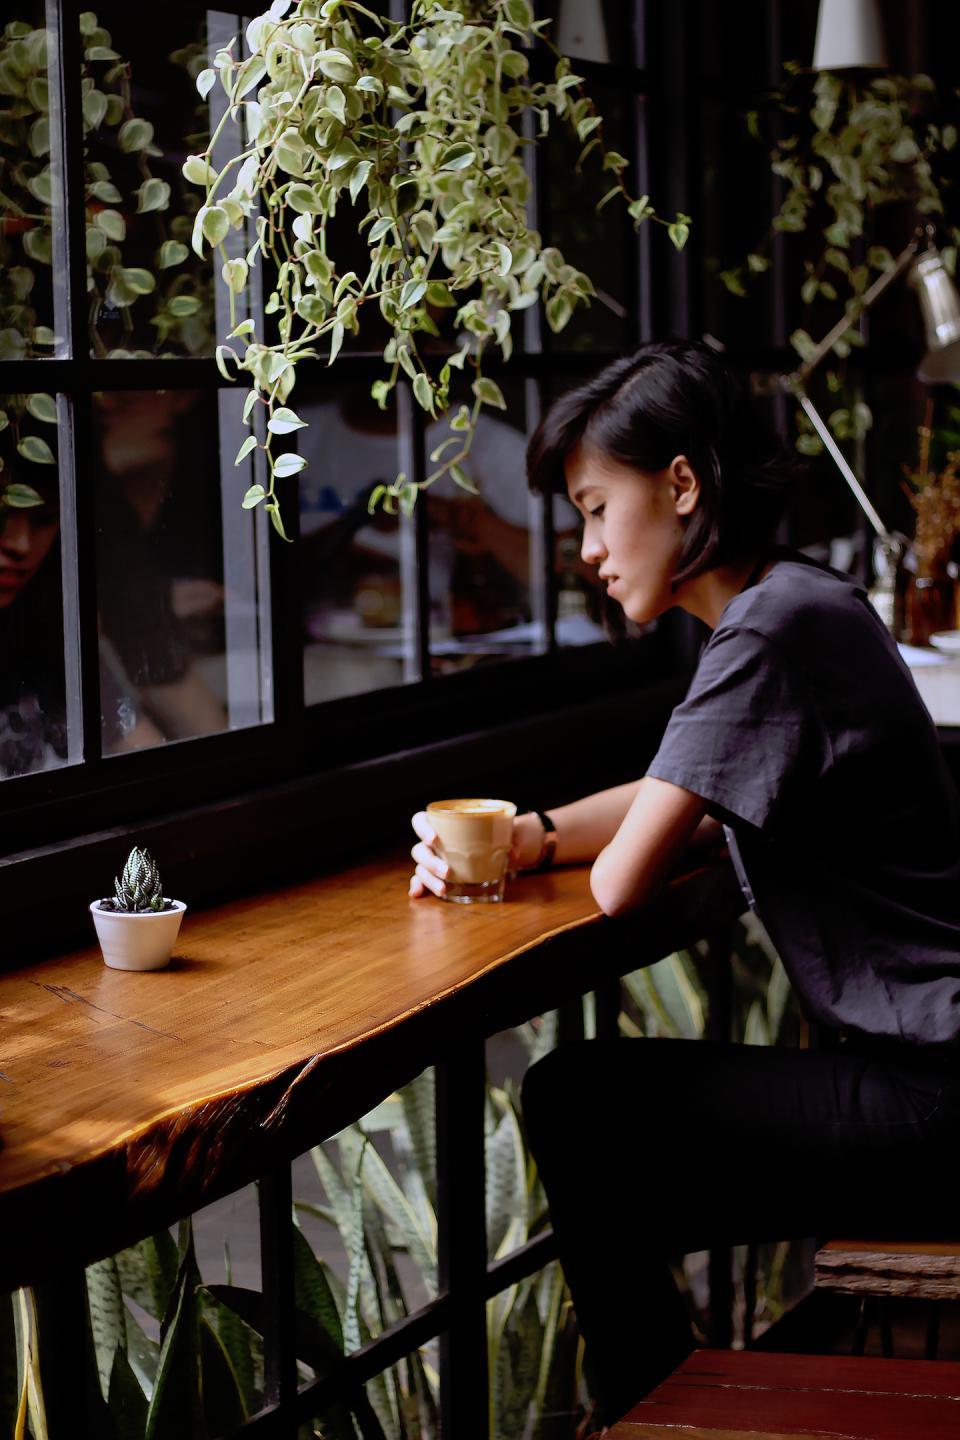 cafe coffee plants people girl lady woman leaves